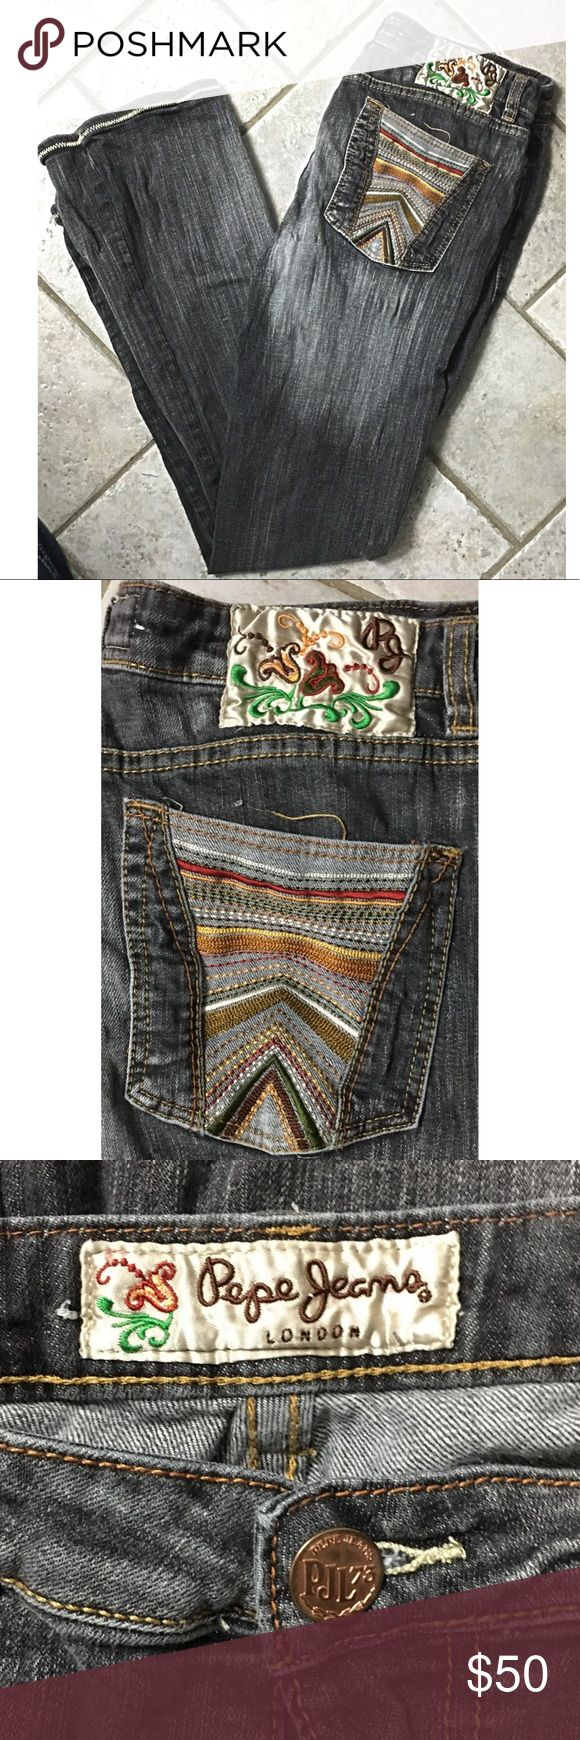 Pepe Vintage High Waisted Mom Jeans Black 30 Pepe Jeans London Vintage High Waist Mom Jeans size 30. These jeans from the 90s are so unique & fun with patches & colorful embroidery  - they don't make them like this any more!  Measurements coming...... Pepe Jeans Jeans